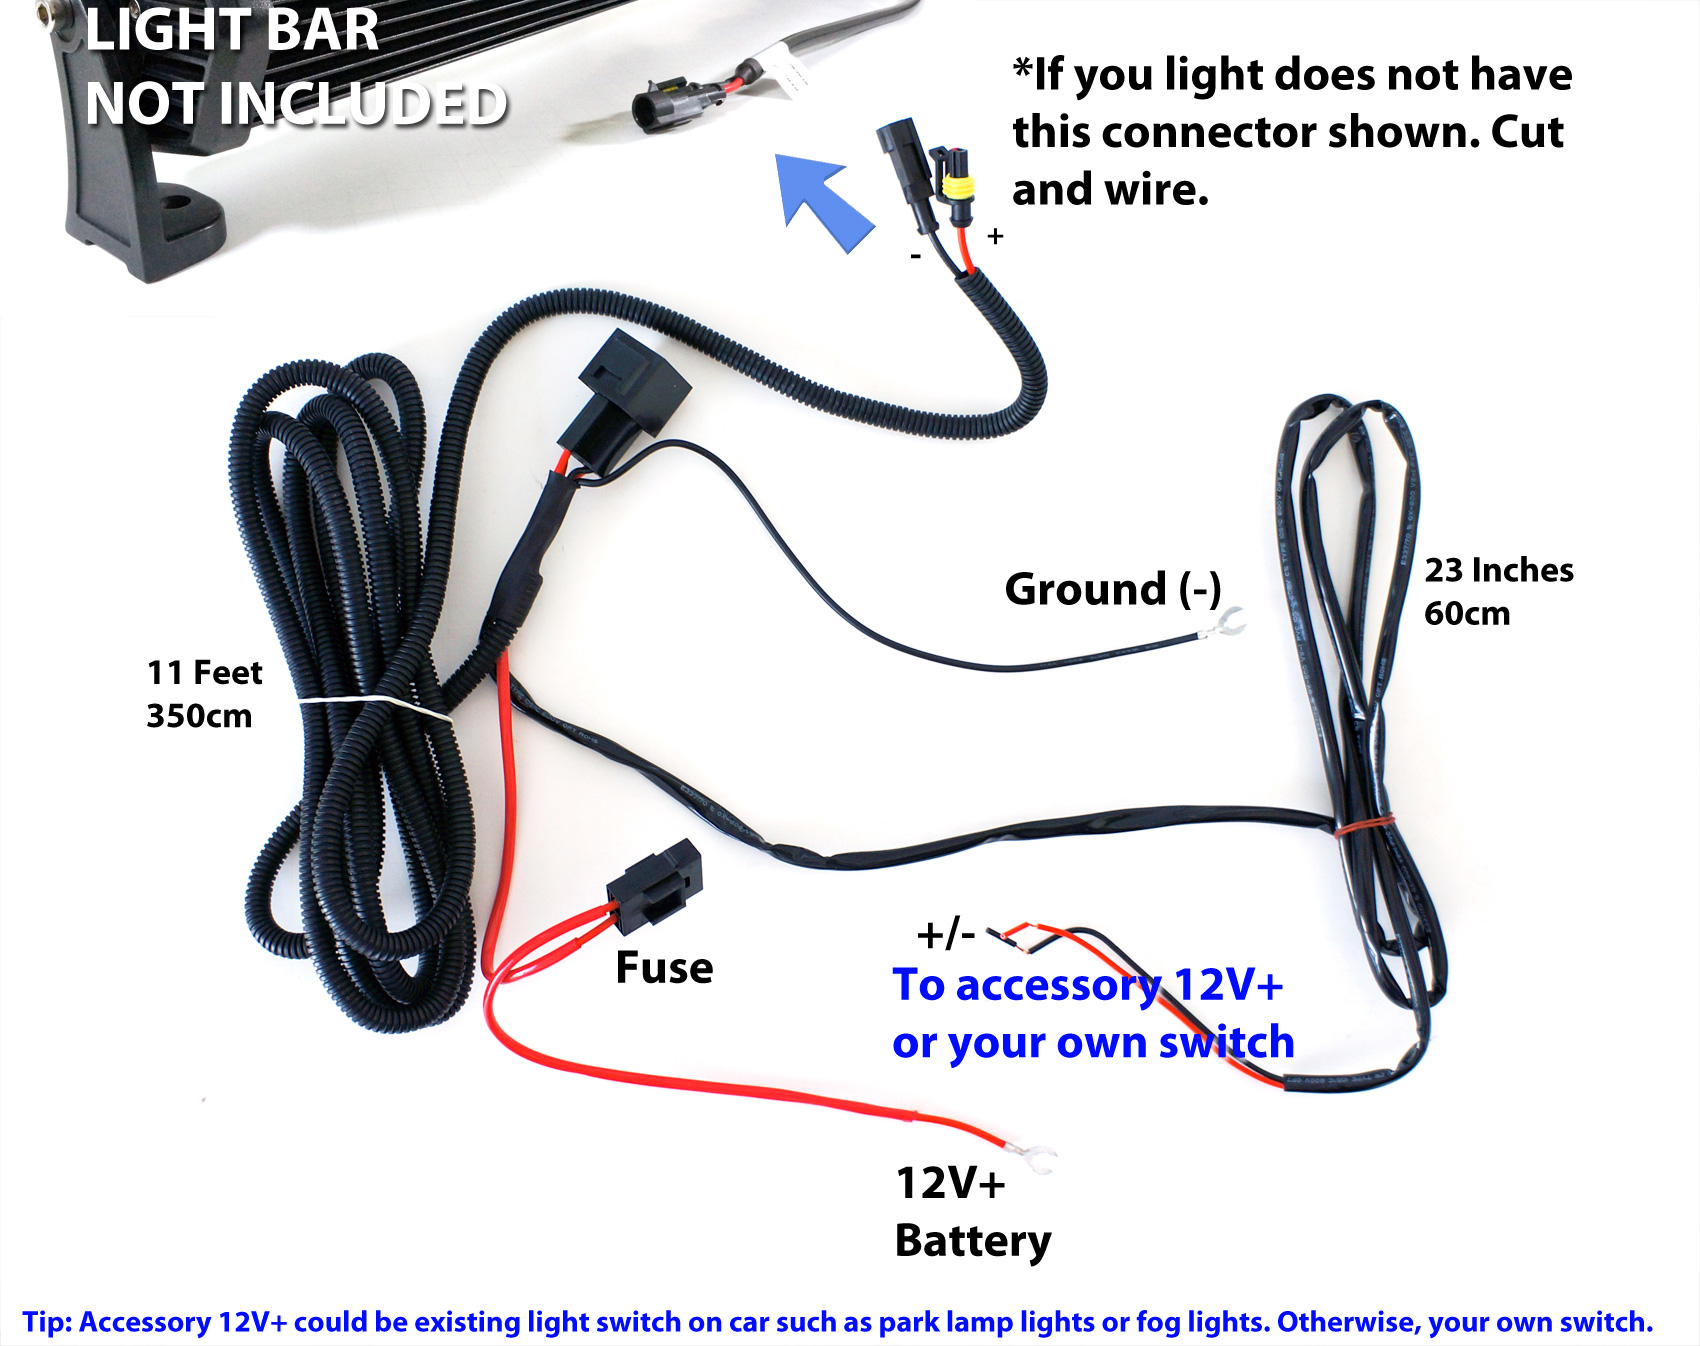 Led Wire Harness Wiring Diagram Will Be A Thing For Switch Universal Relay 36w 72w Light Bars Ebay Rh Com Pod Rigid